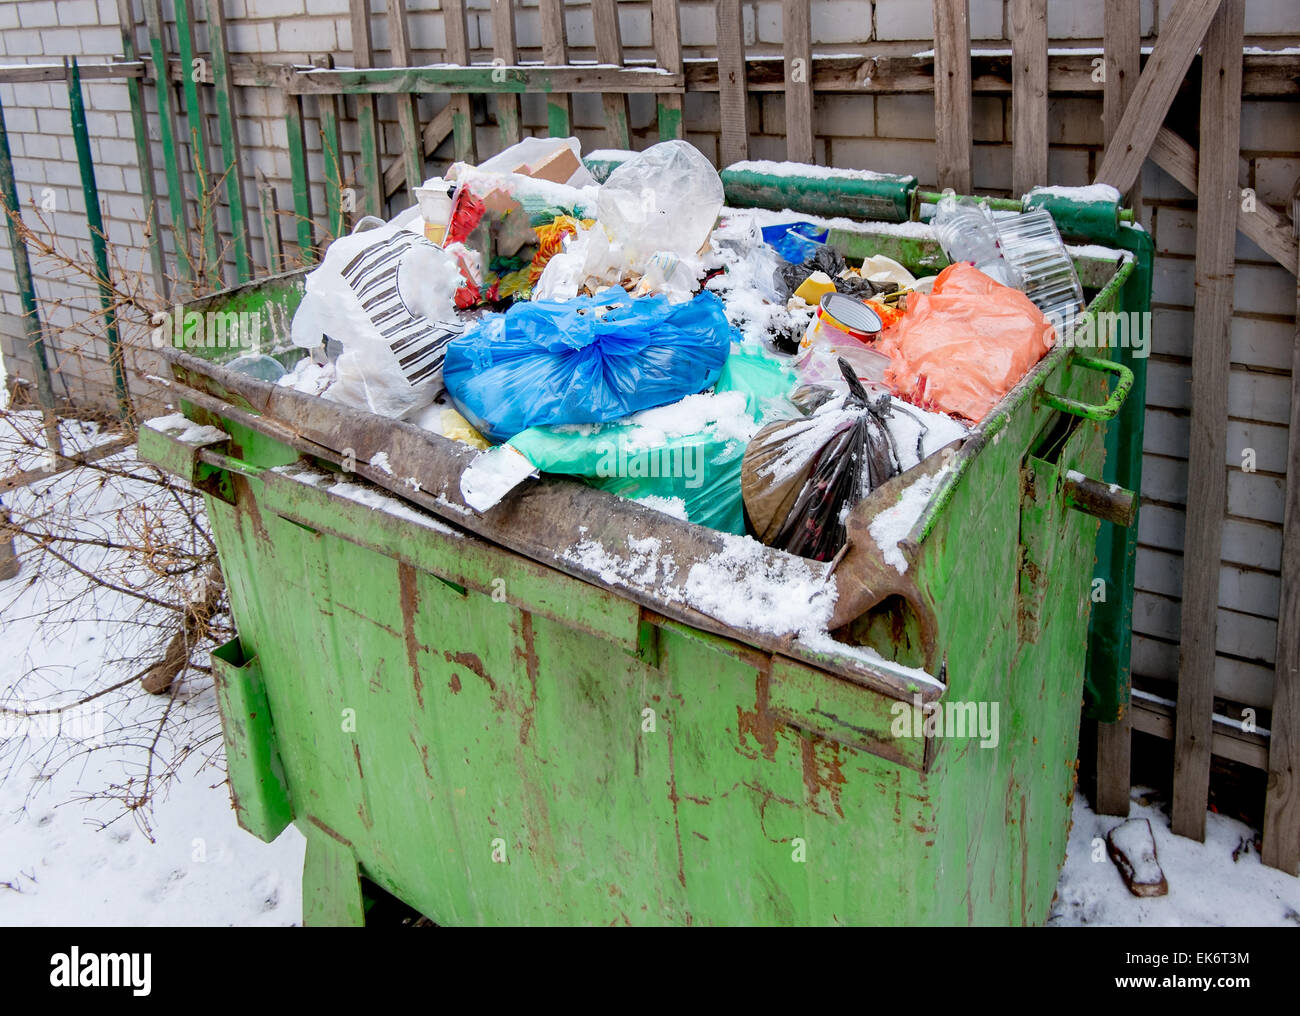 Dirty Dumpster High Resolution Stock Photography and Images - Alamy